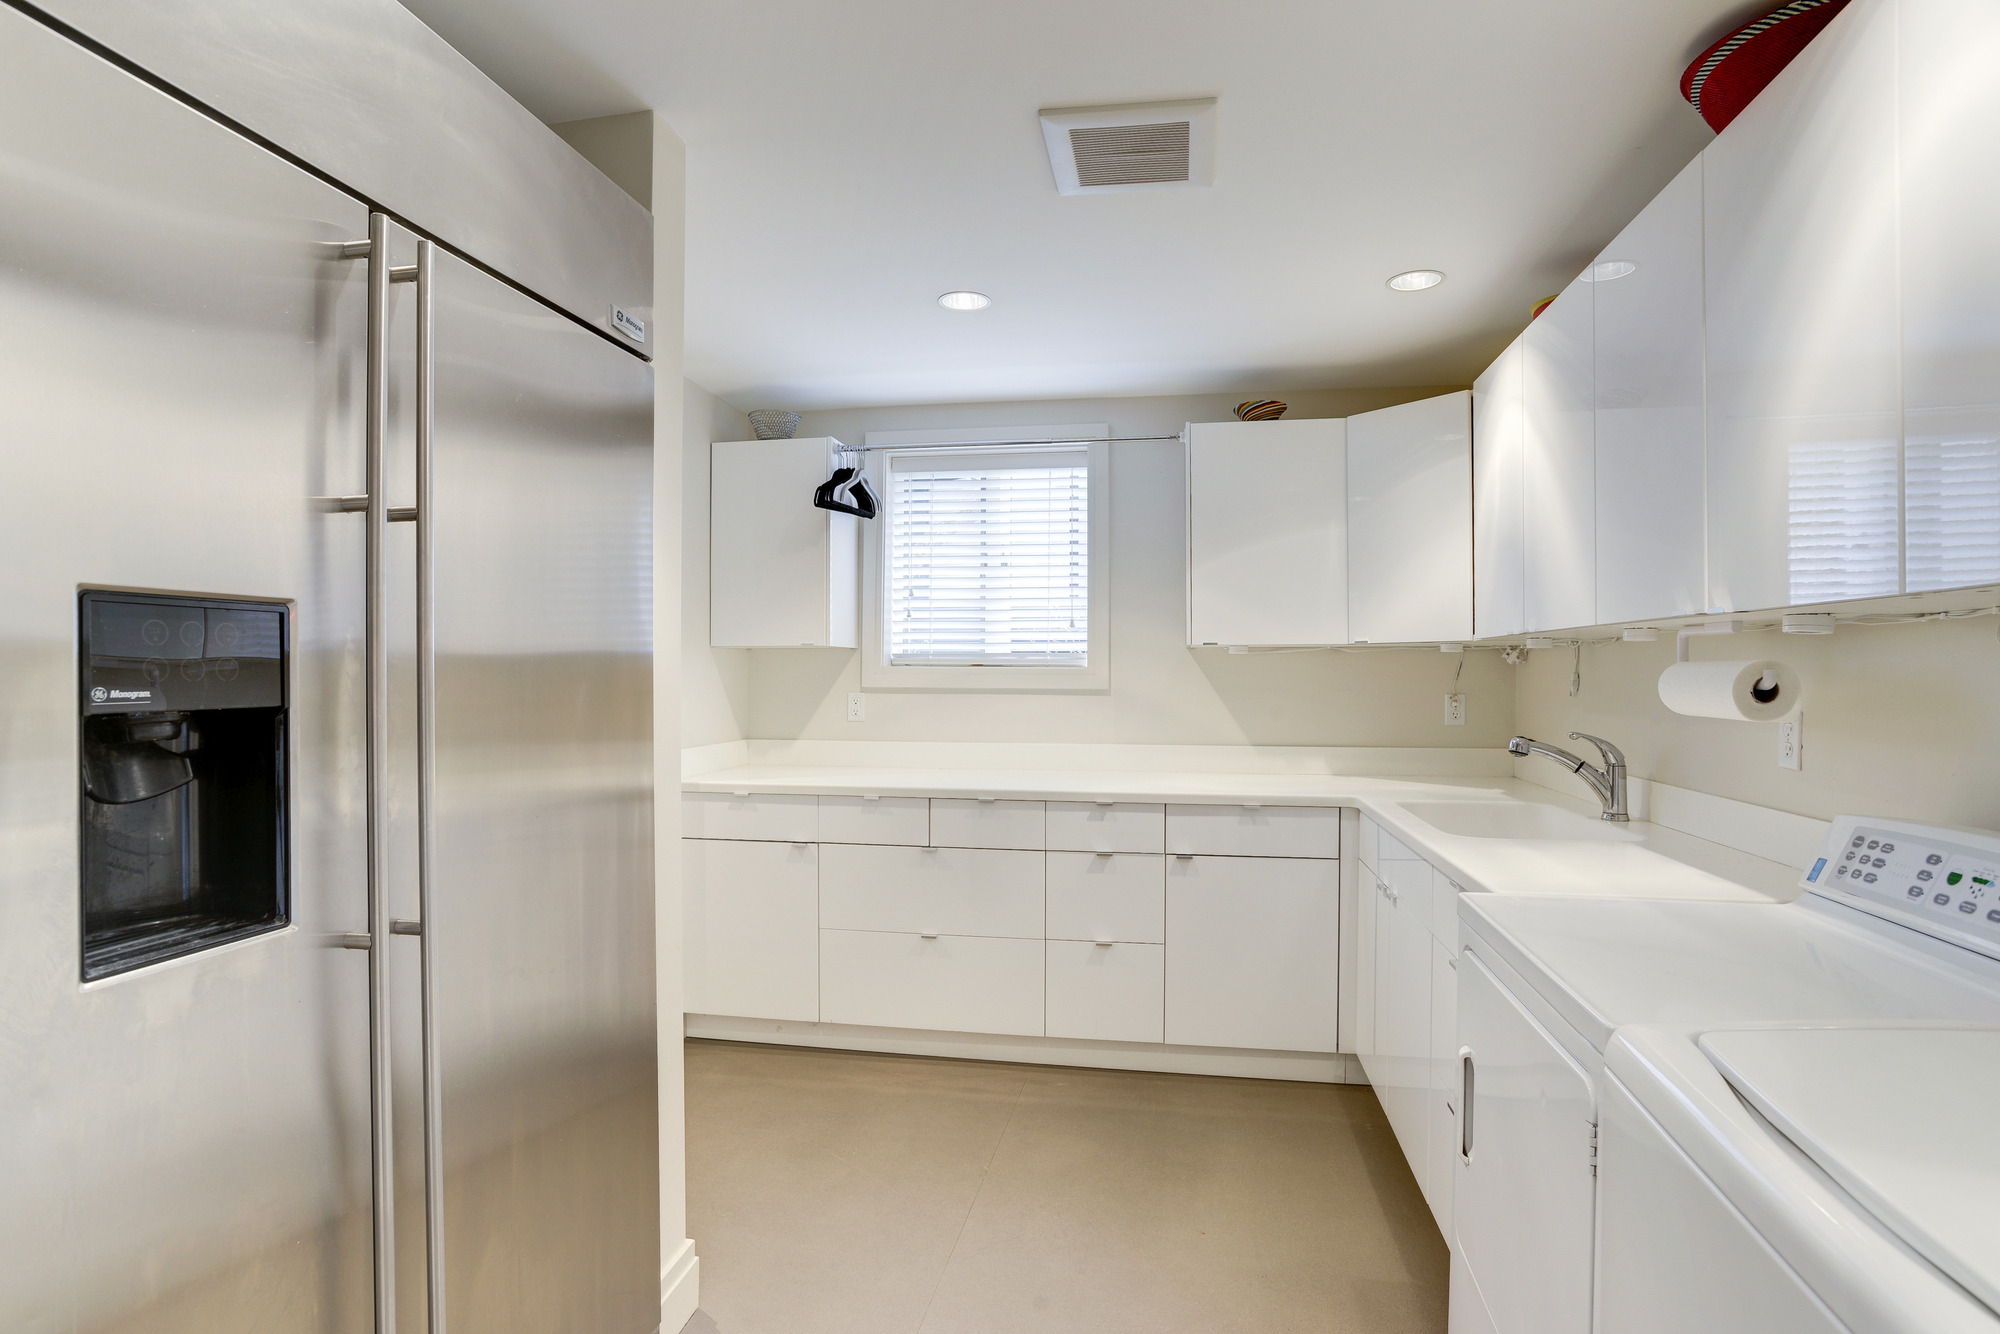 Laundry Room with Additional Storage & Refrigerator